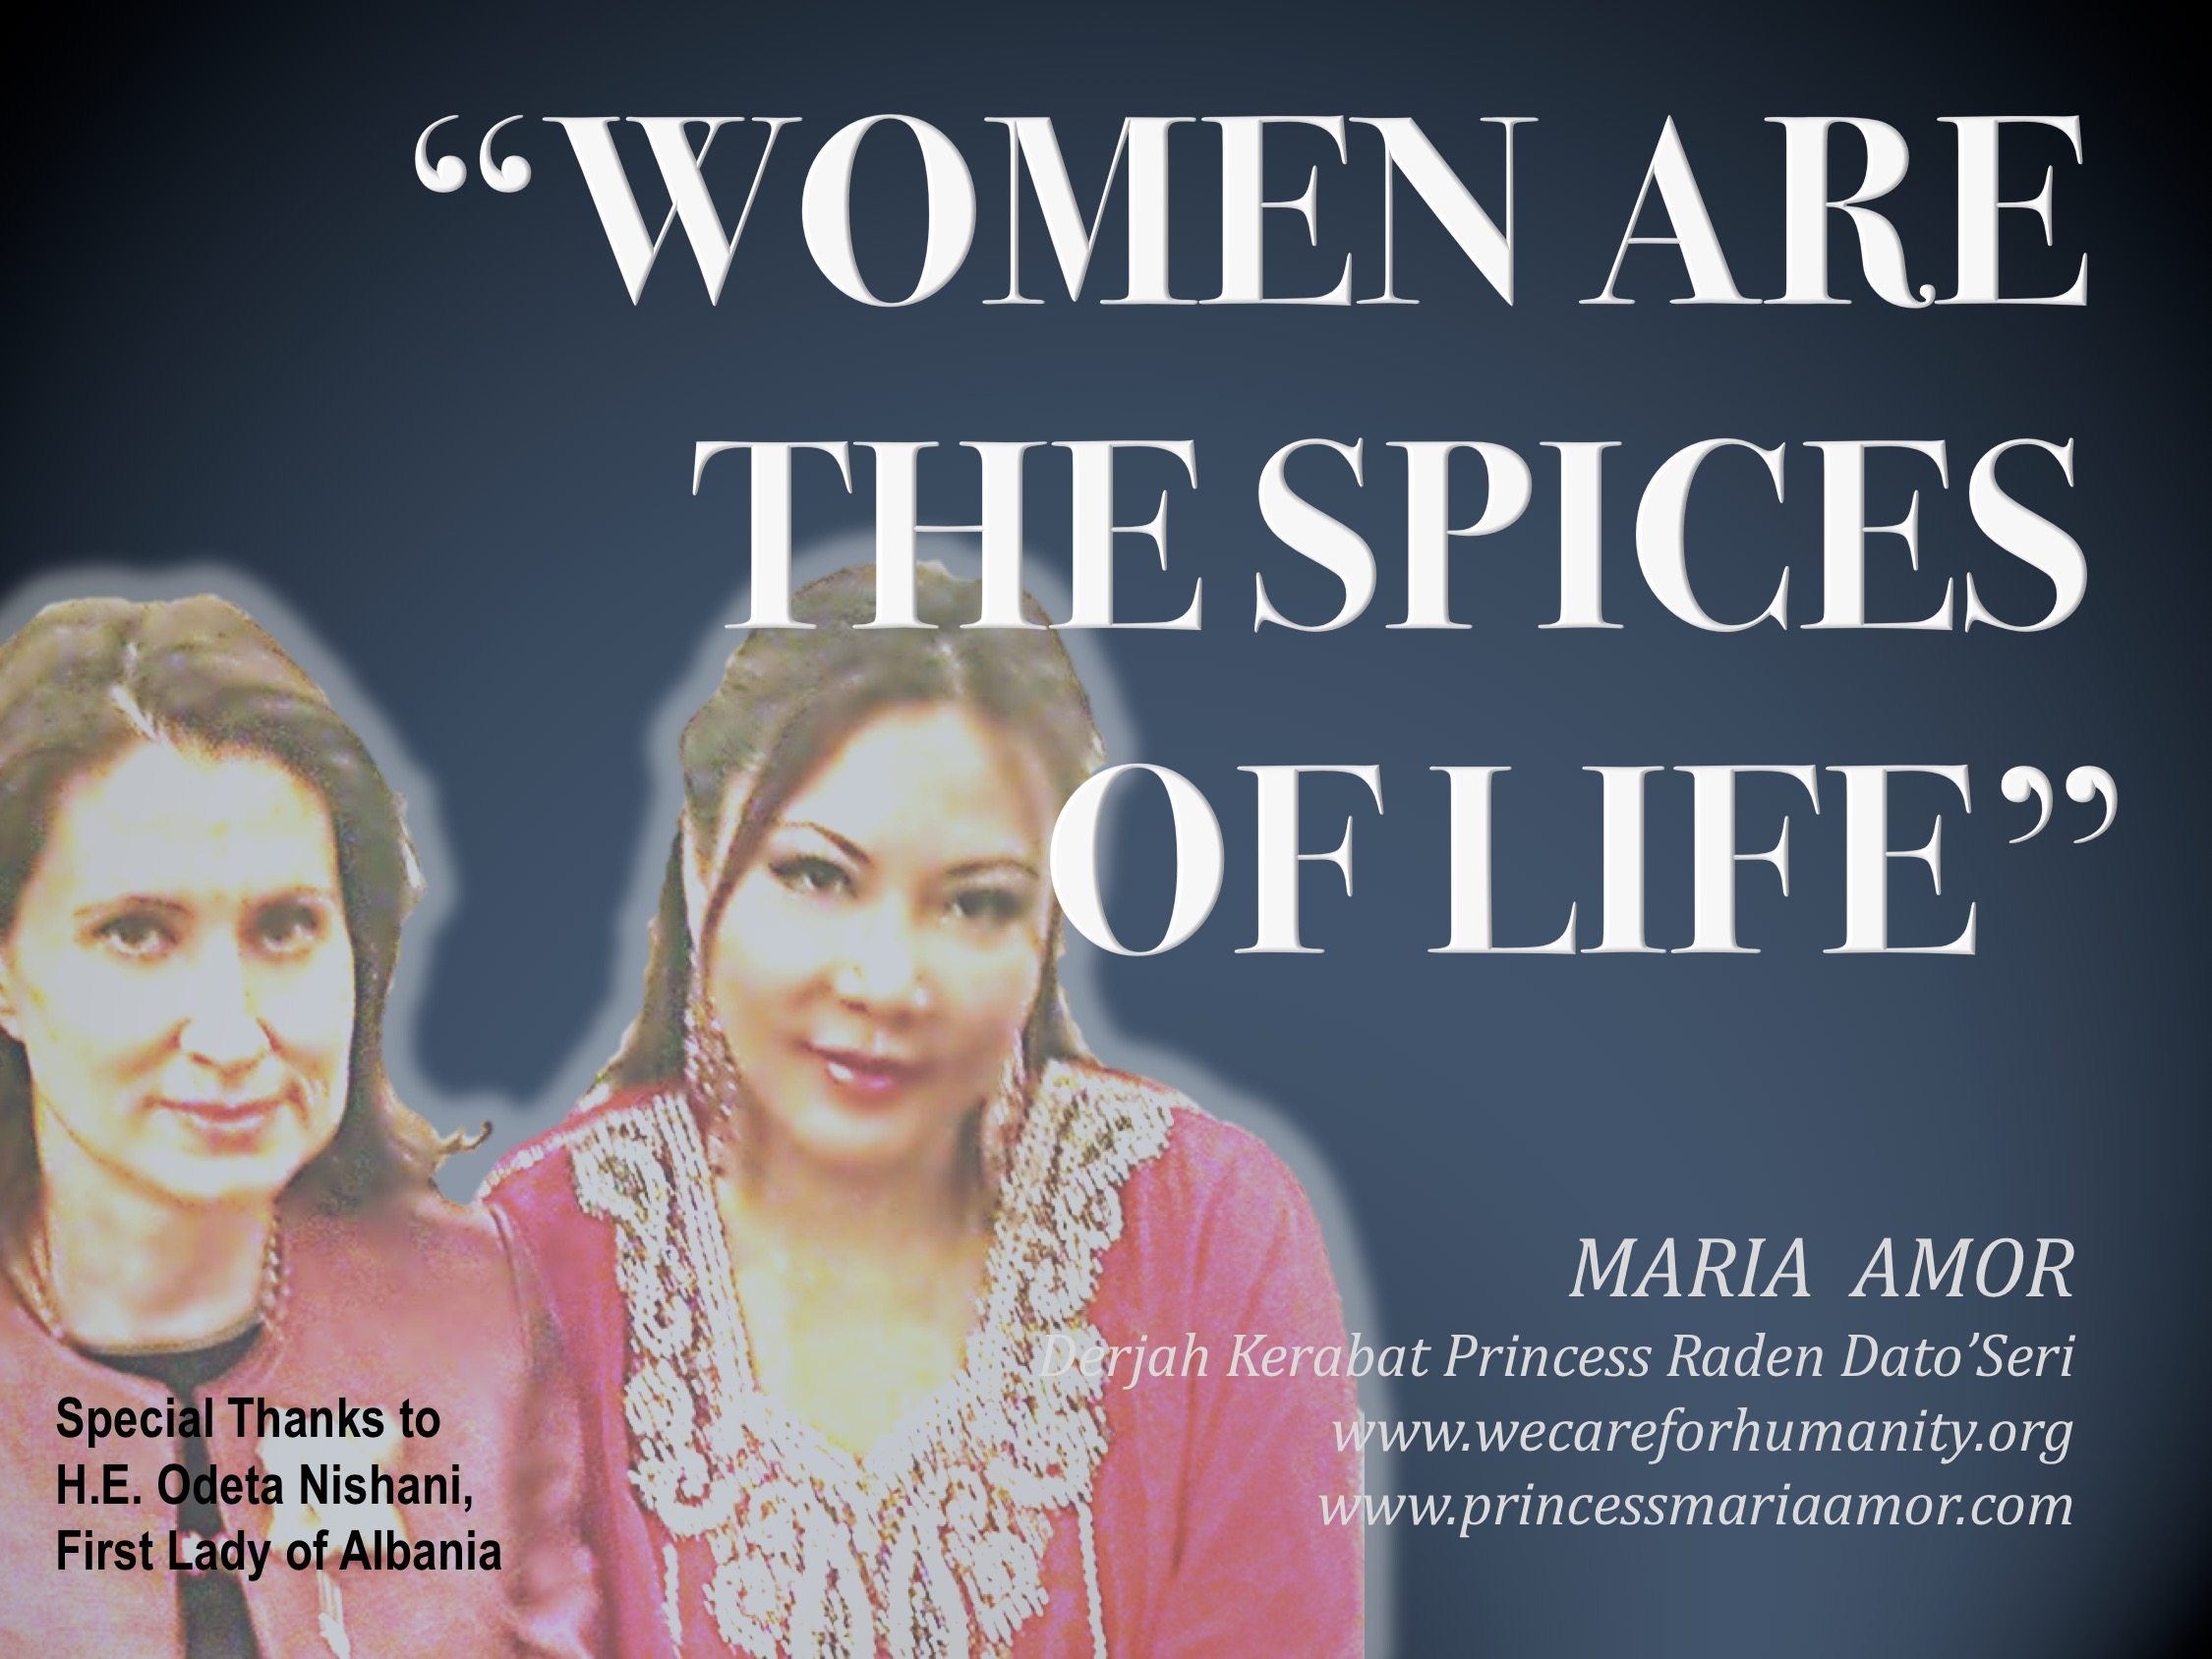 """Women are The Spice of Life"": We Care for Humanity's Tribute and empowerment Mantra for the masses."